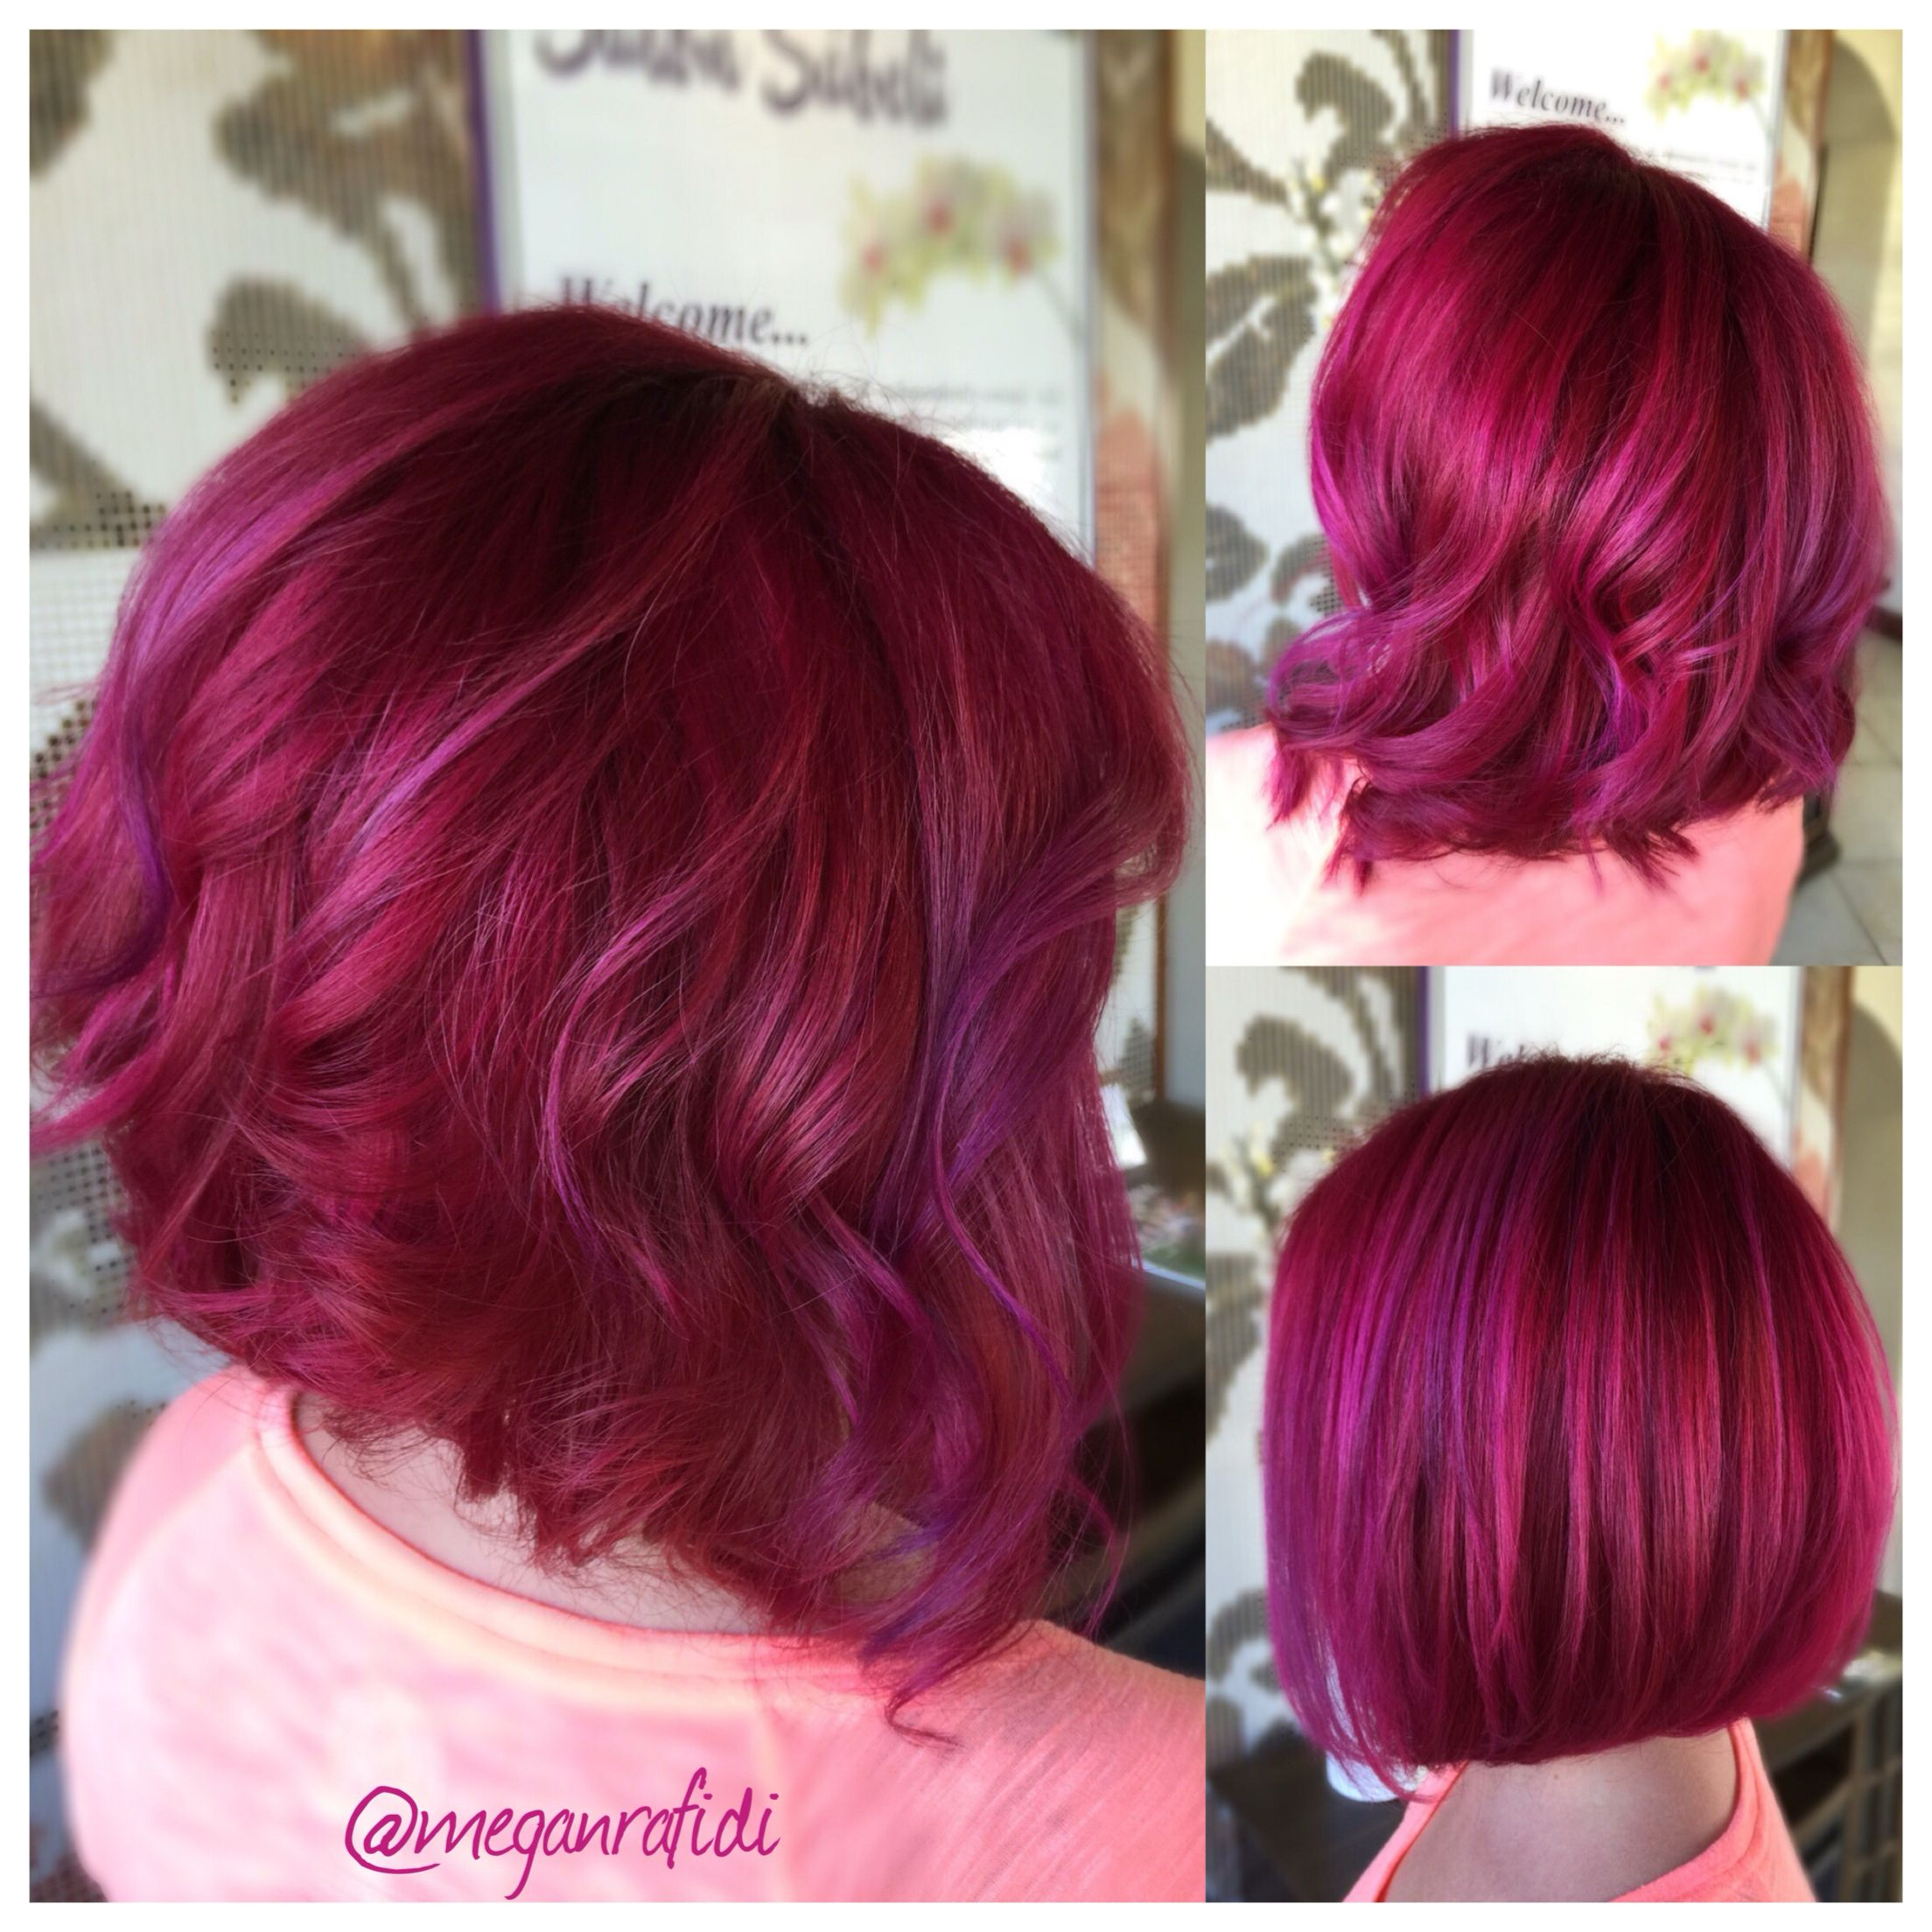 Igora Royal 9 98 On The Roots And A Blend Of Joico Intensity Magenta